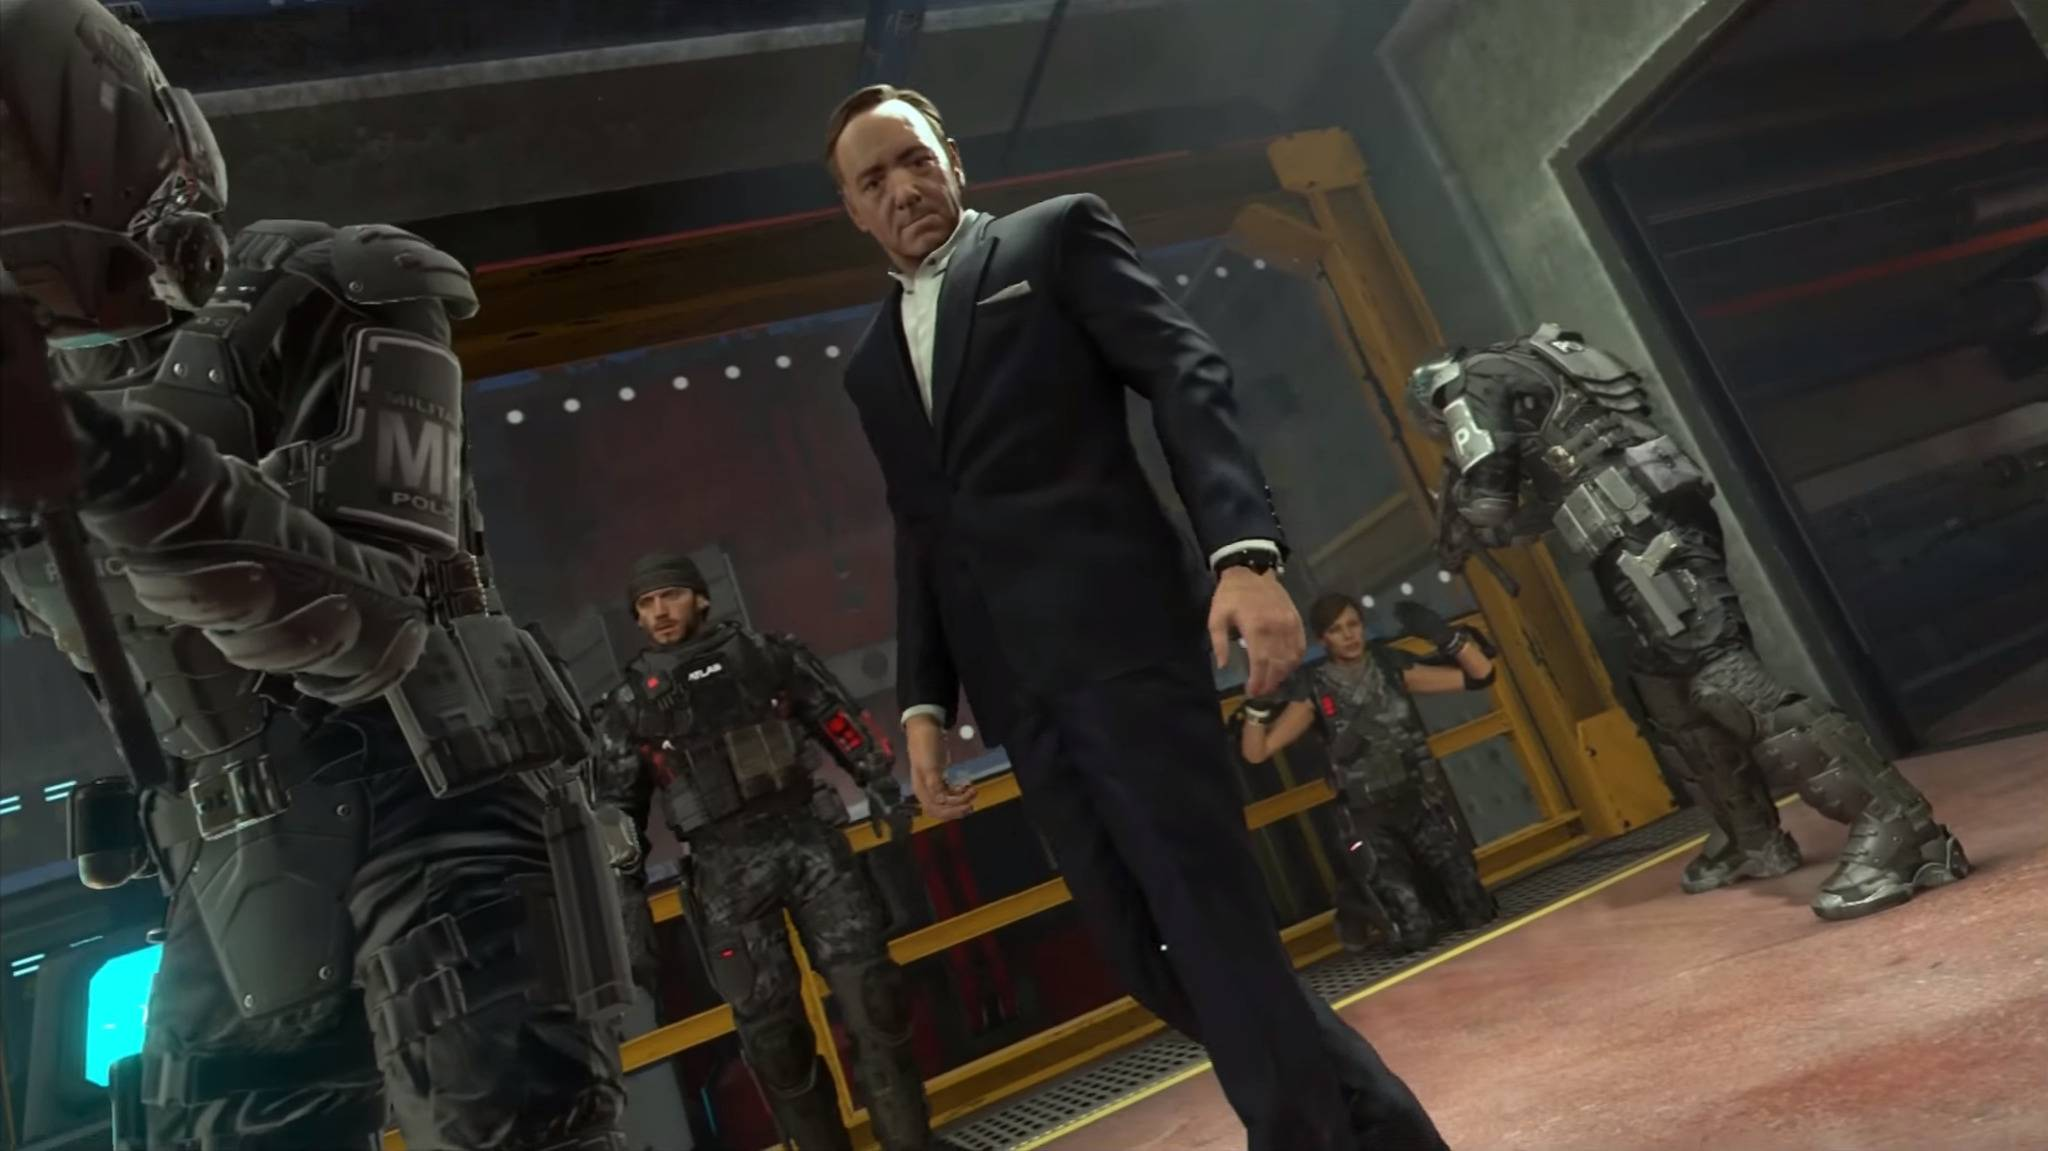 """Kevin Spacey als Bösewicht Jonathan Irons in """"Call of Duty: Advanced Warfare"""""""